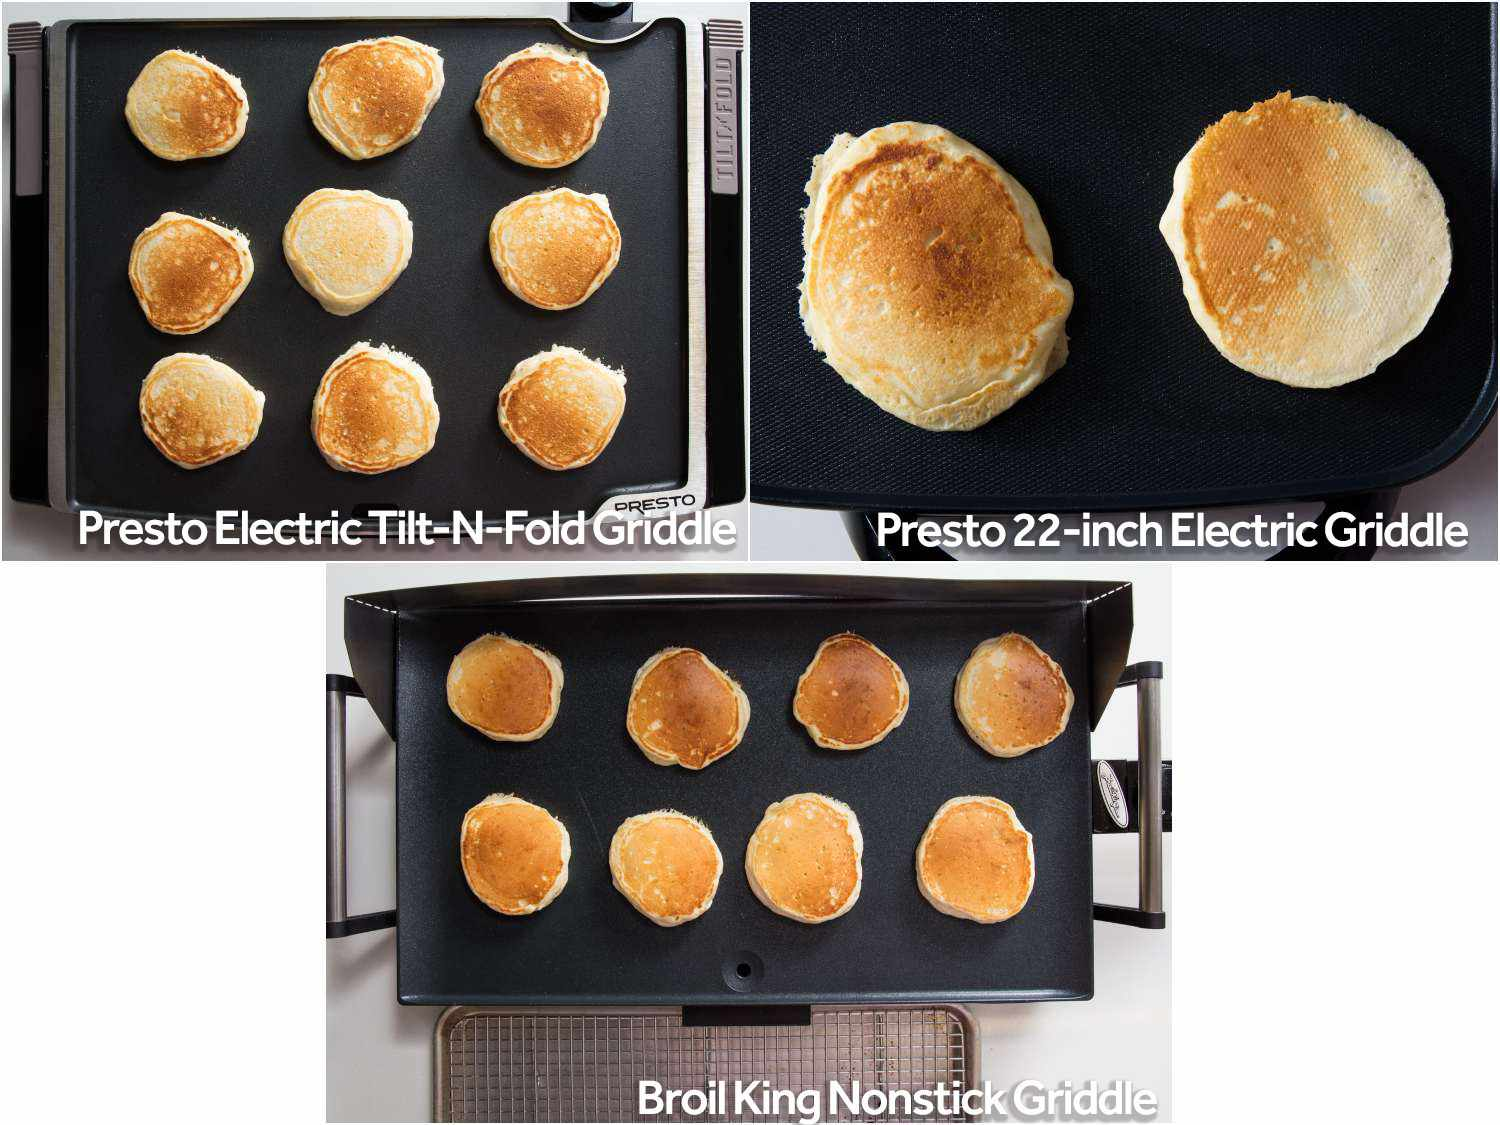 Cooking pancakes on top three griddles.